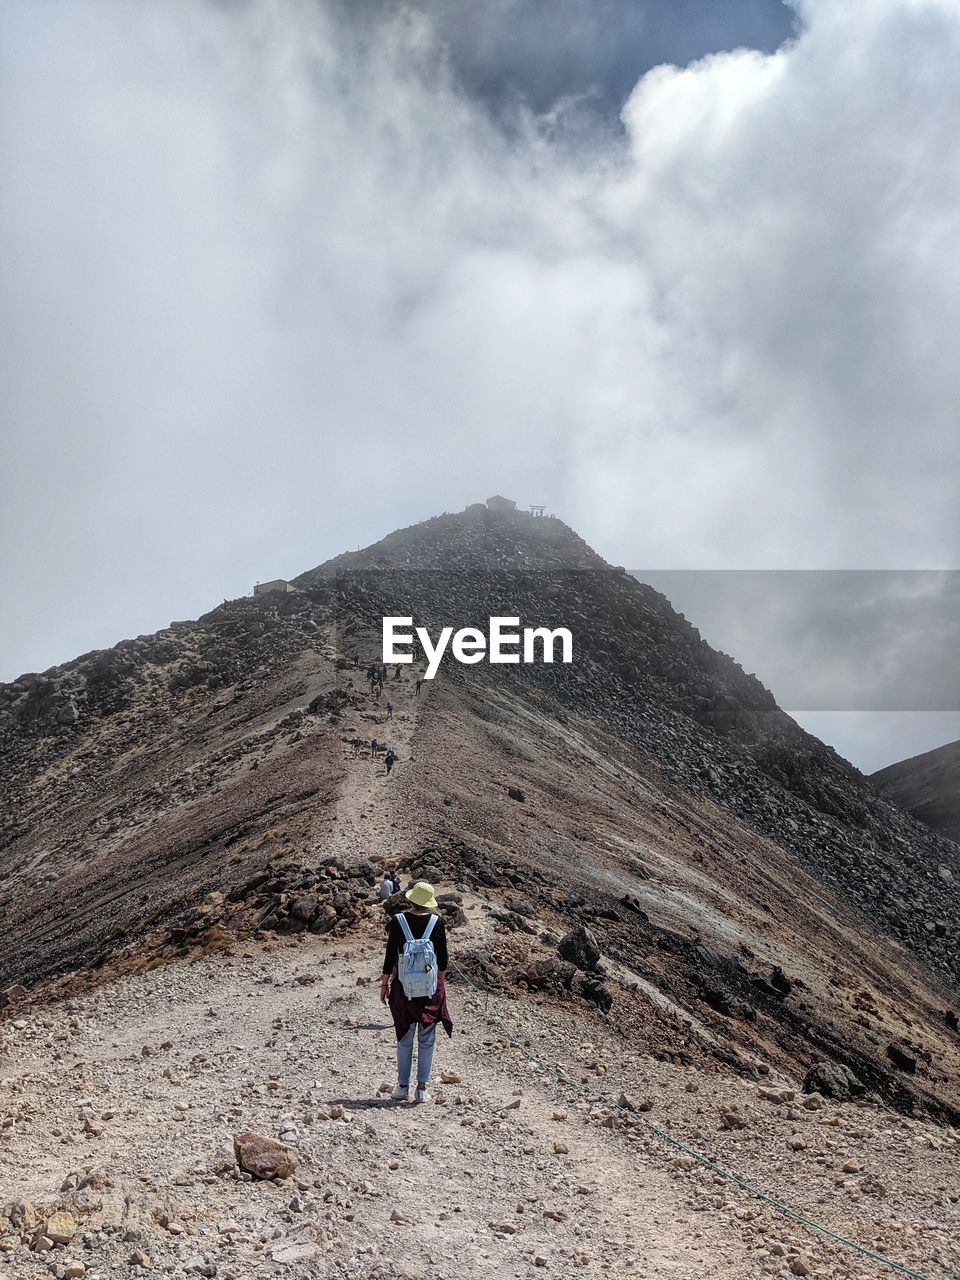 mountain, sky, leisure activity, real people, hiking, cloud - sky, non-urban scene, lifestyles, day, nature, environment, scenics - nature, adventure, beauty in nature, rear view, activity, landscape, one person, mountain range, travel, outdoors